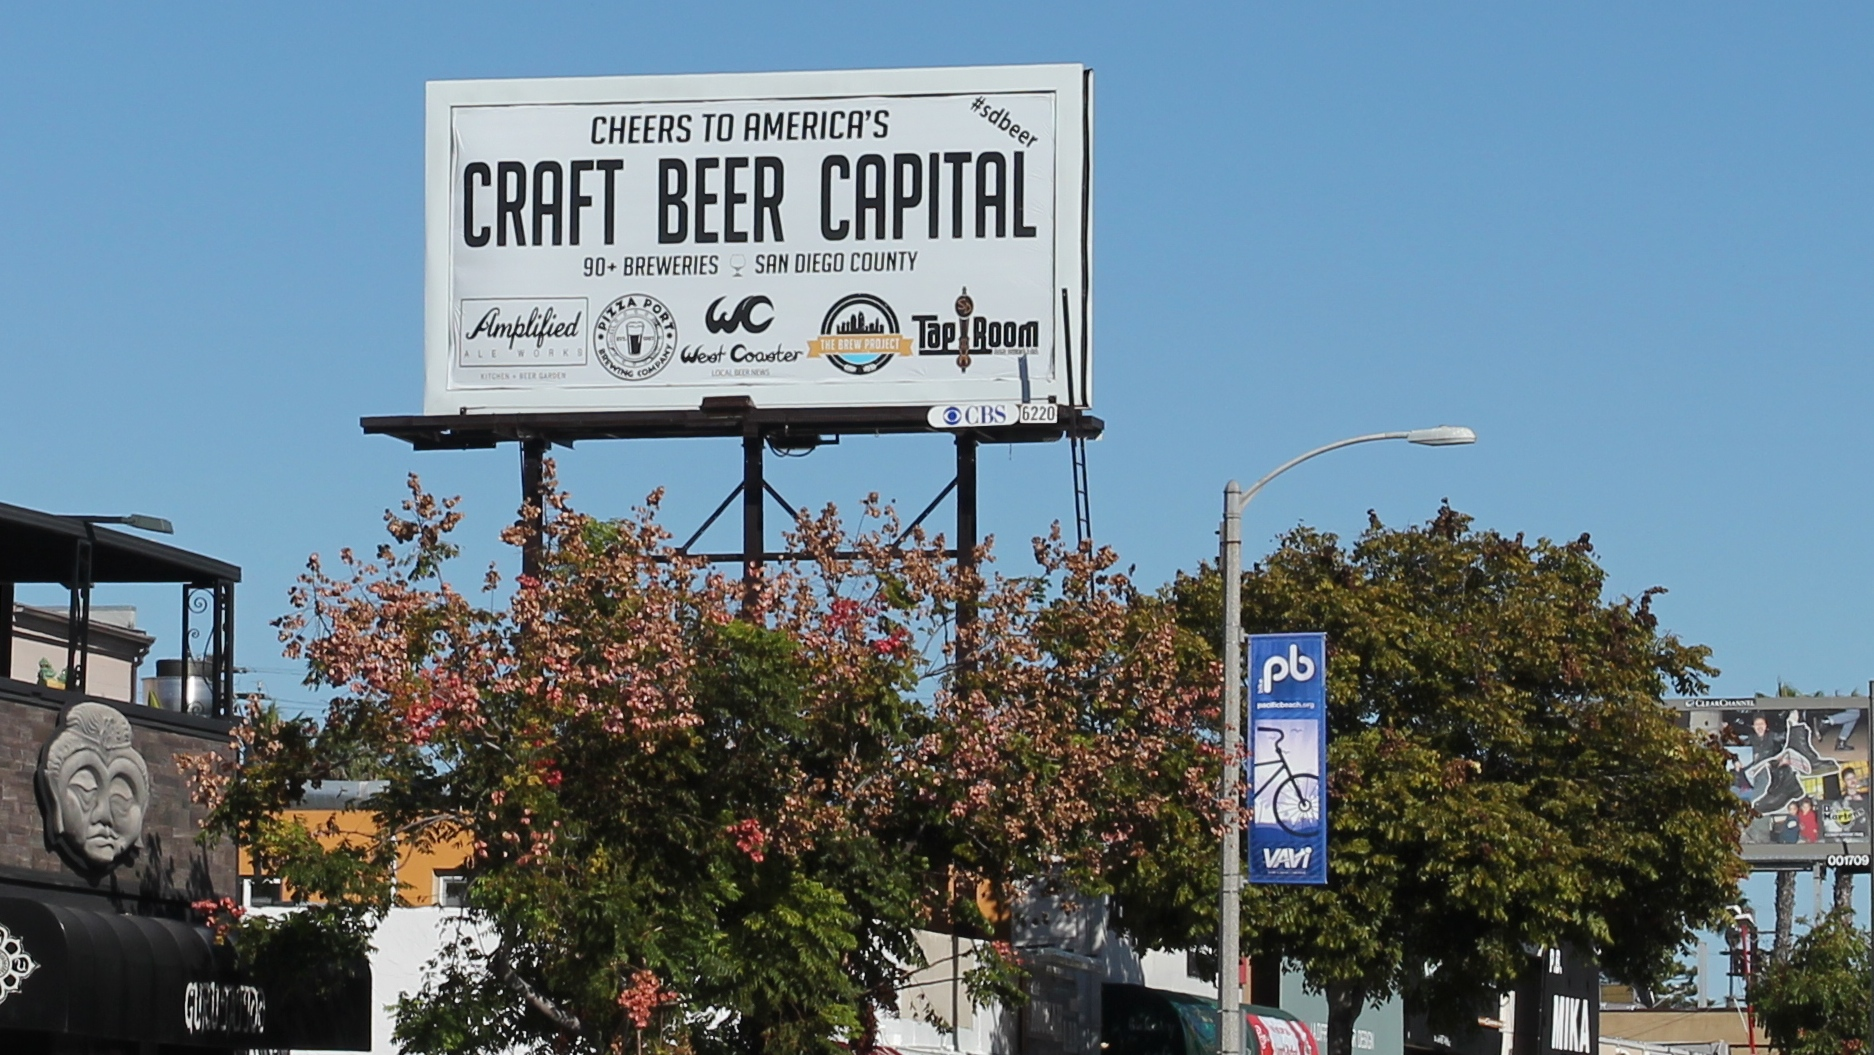 Craft beer industry bubbles in san diego jms reports for Craft beer guild san diego